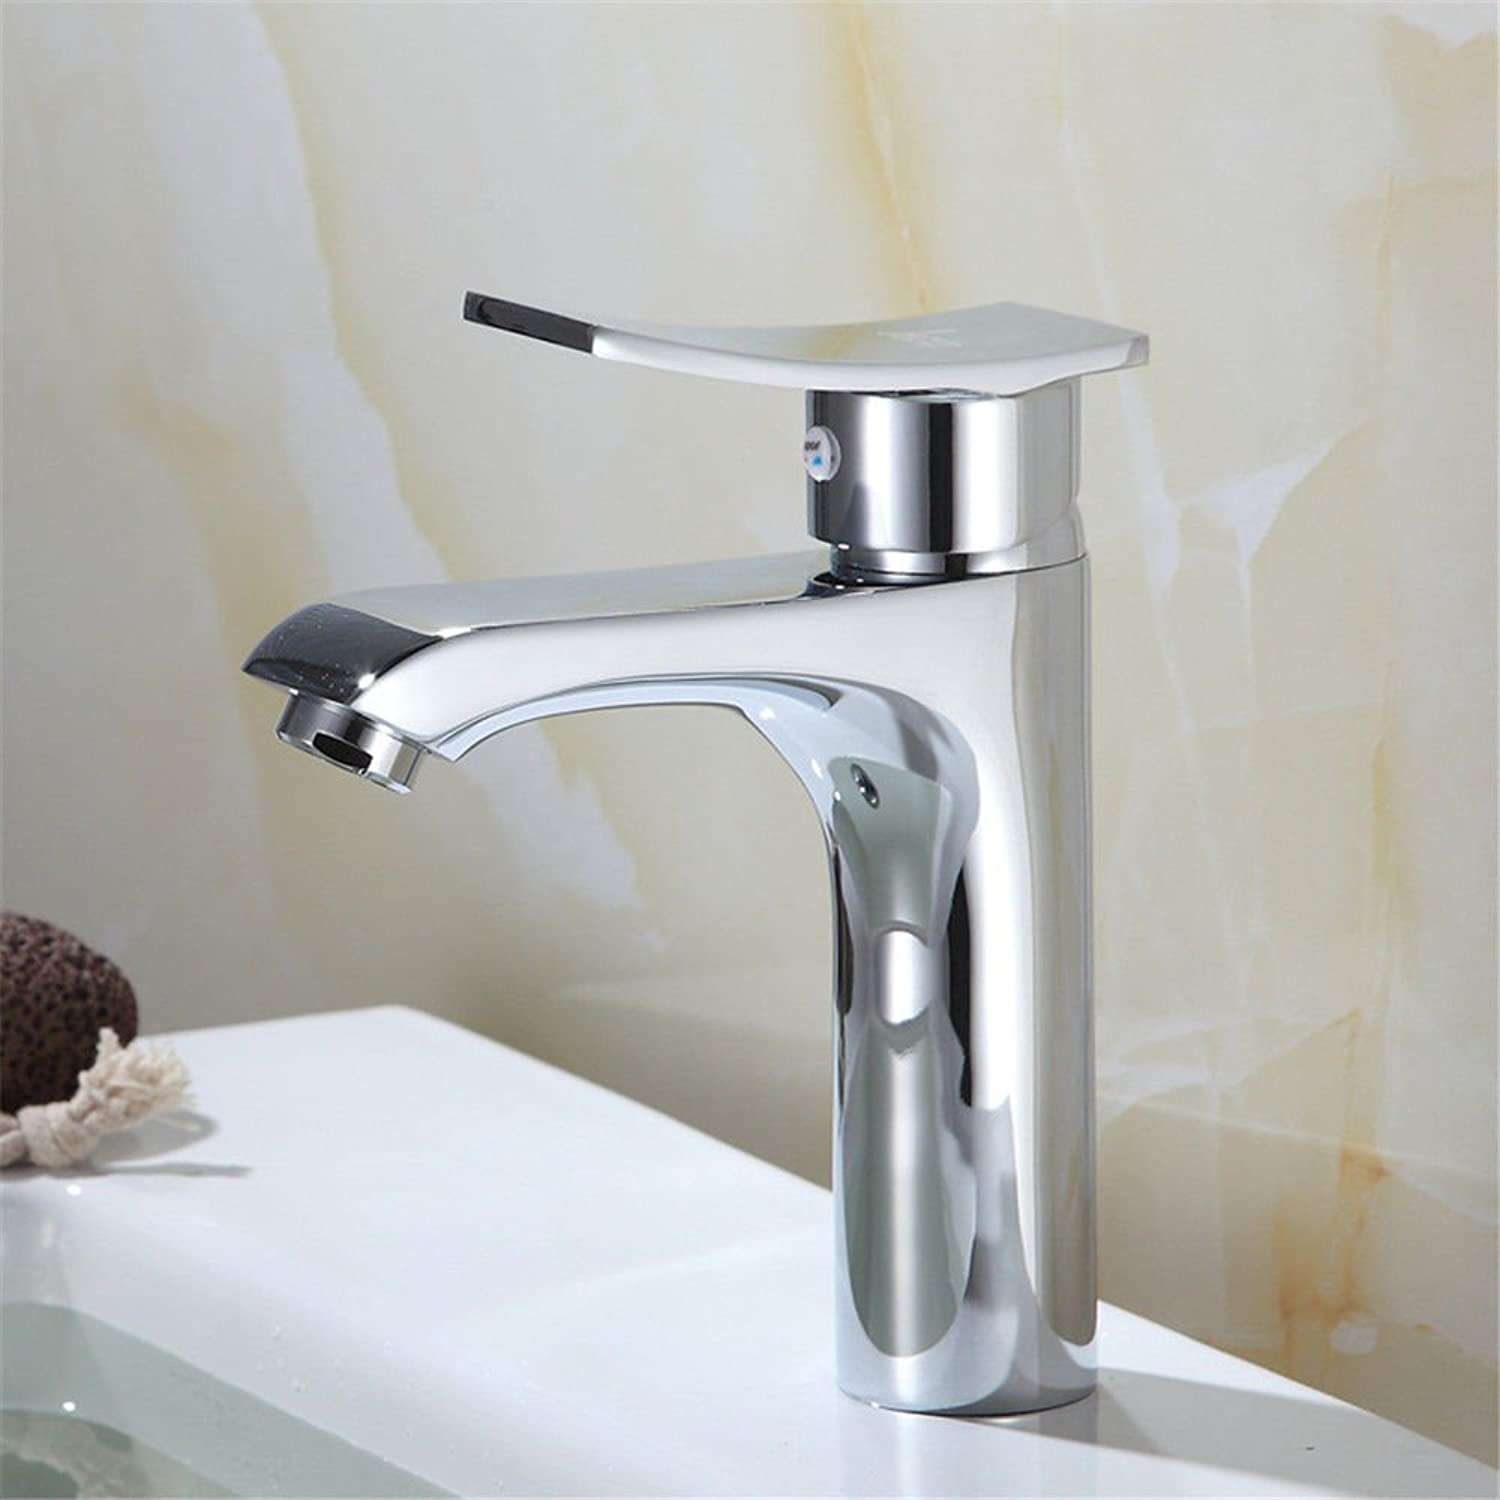 Hlluya Professional Sink Mixer Tap Kitchen Faucet The copper hot and cold basin faucet single hole paint bathroom vanity faucet mixing valve faucet,